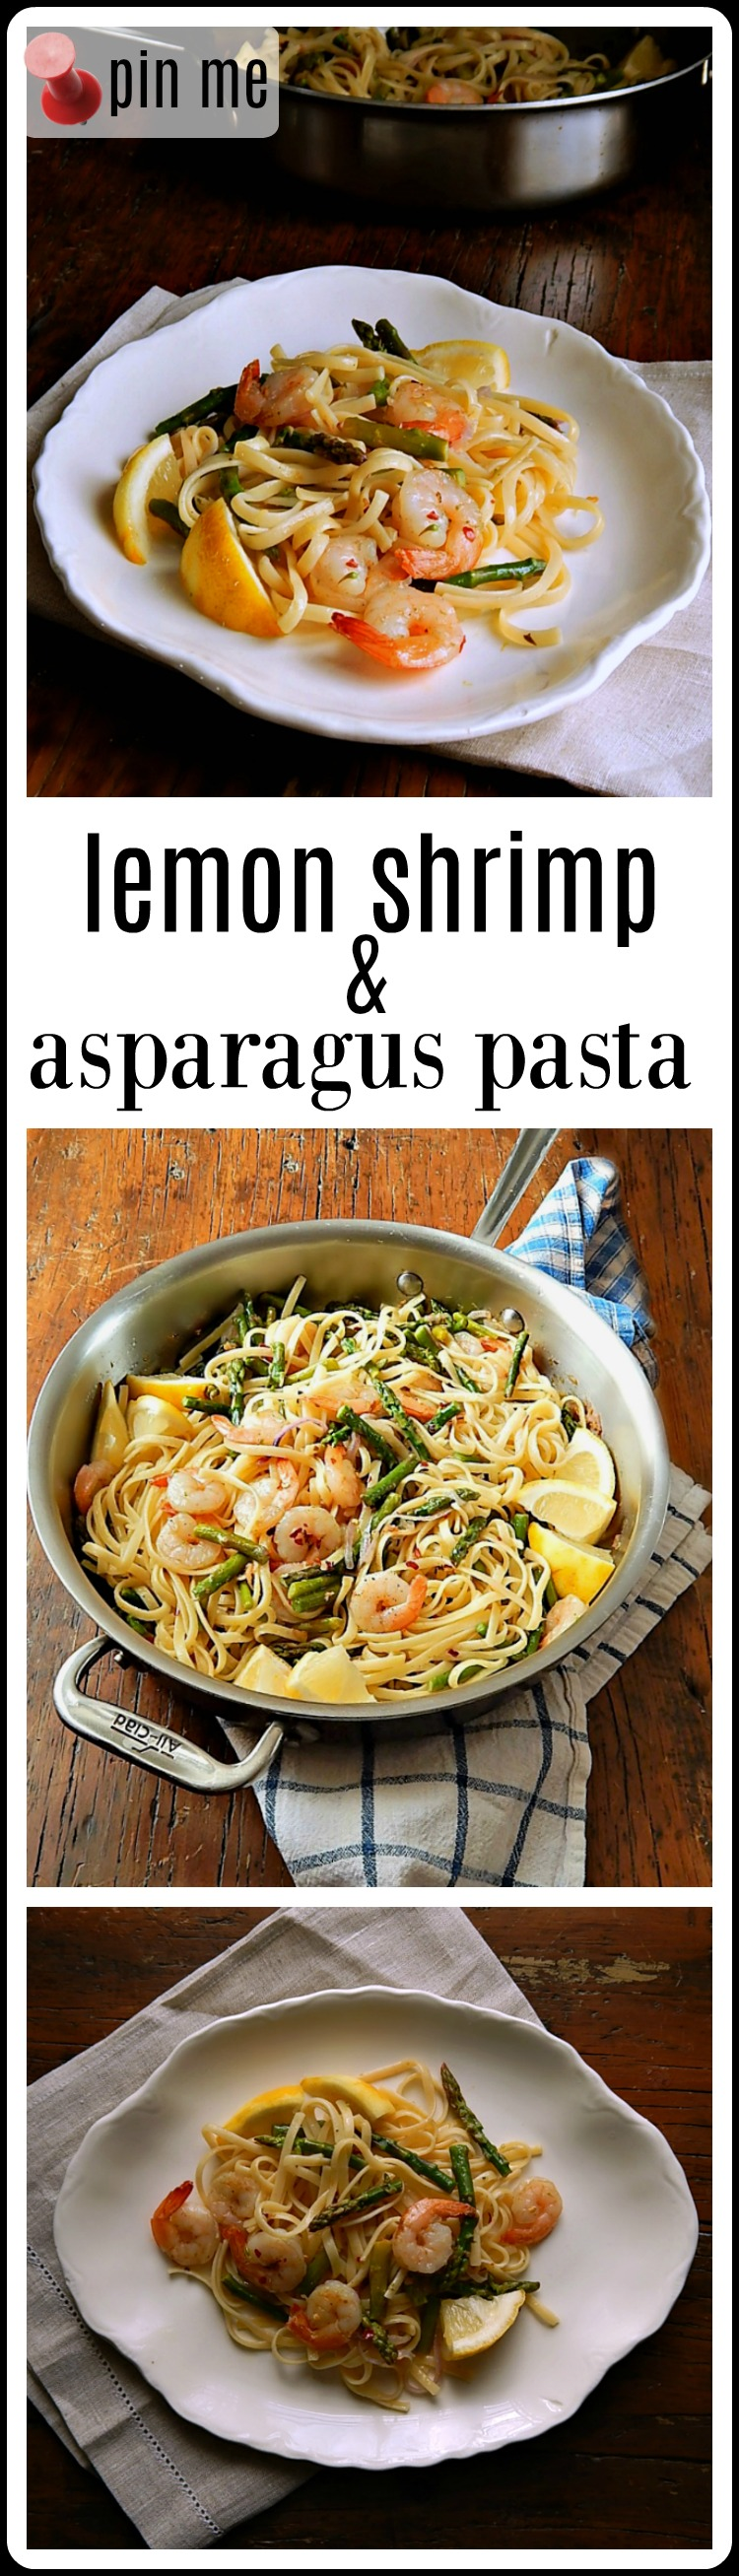 Lemon Shrimp & Asparagus Pasta is super quick, easy & elegant! It's a great dish for a weeknight or Mother's day or a brunch. Under 30 minutes start to finish. #LemonShrimpAsparagusPasta #ShrimpPasta #MothersDayBrunch